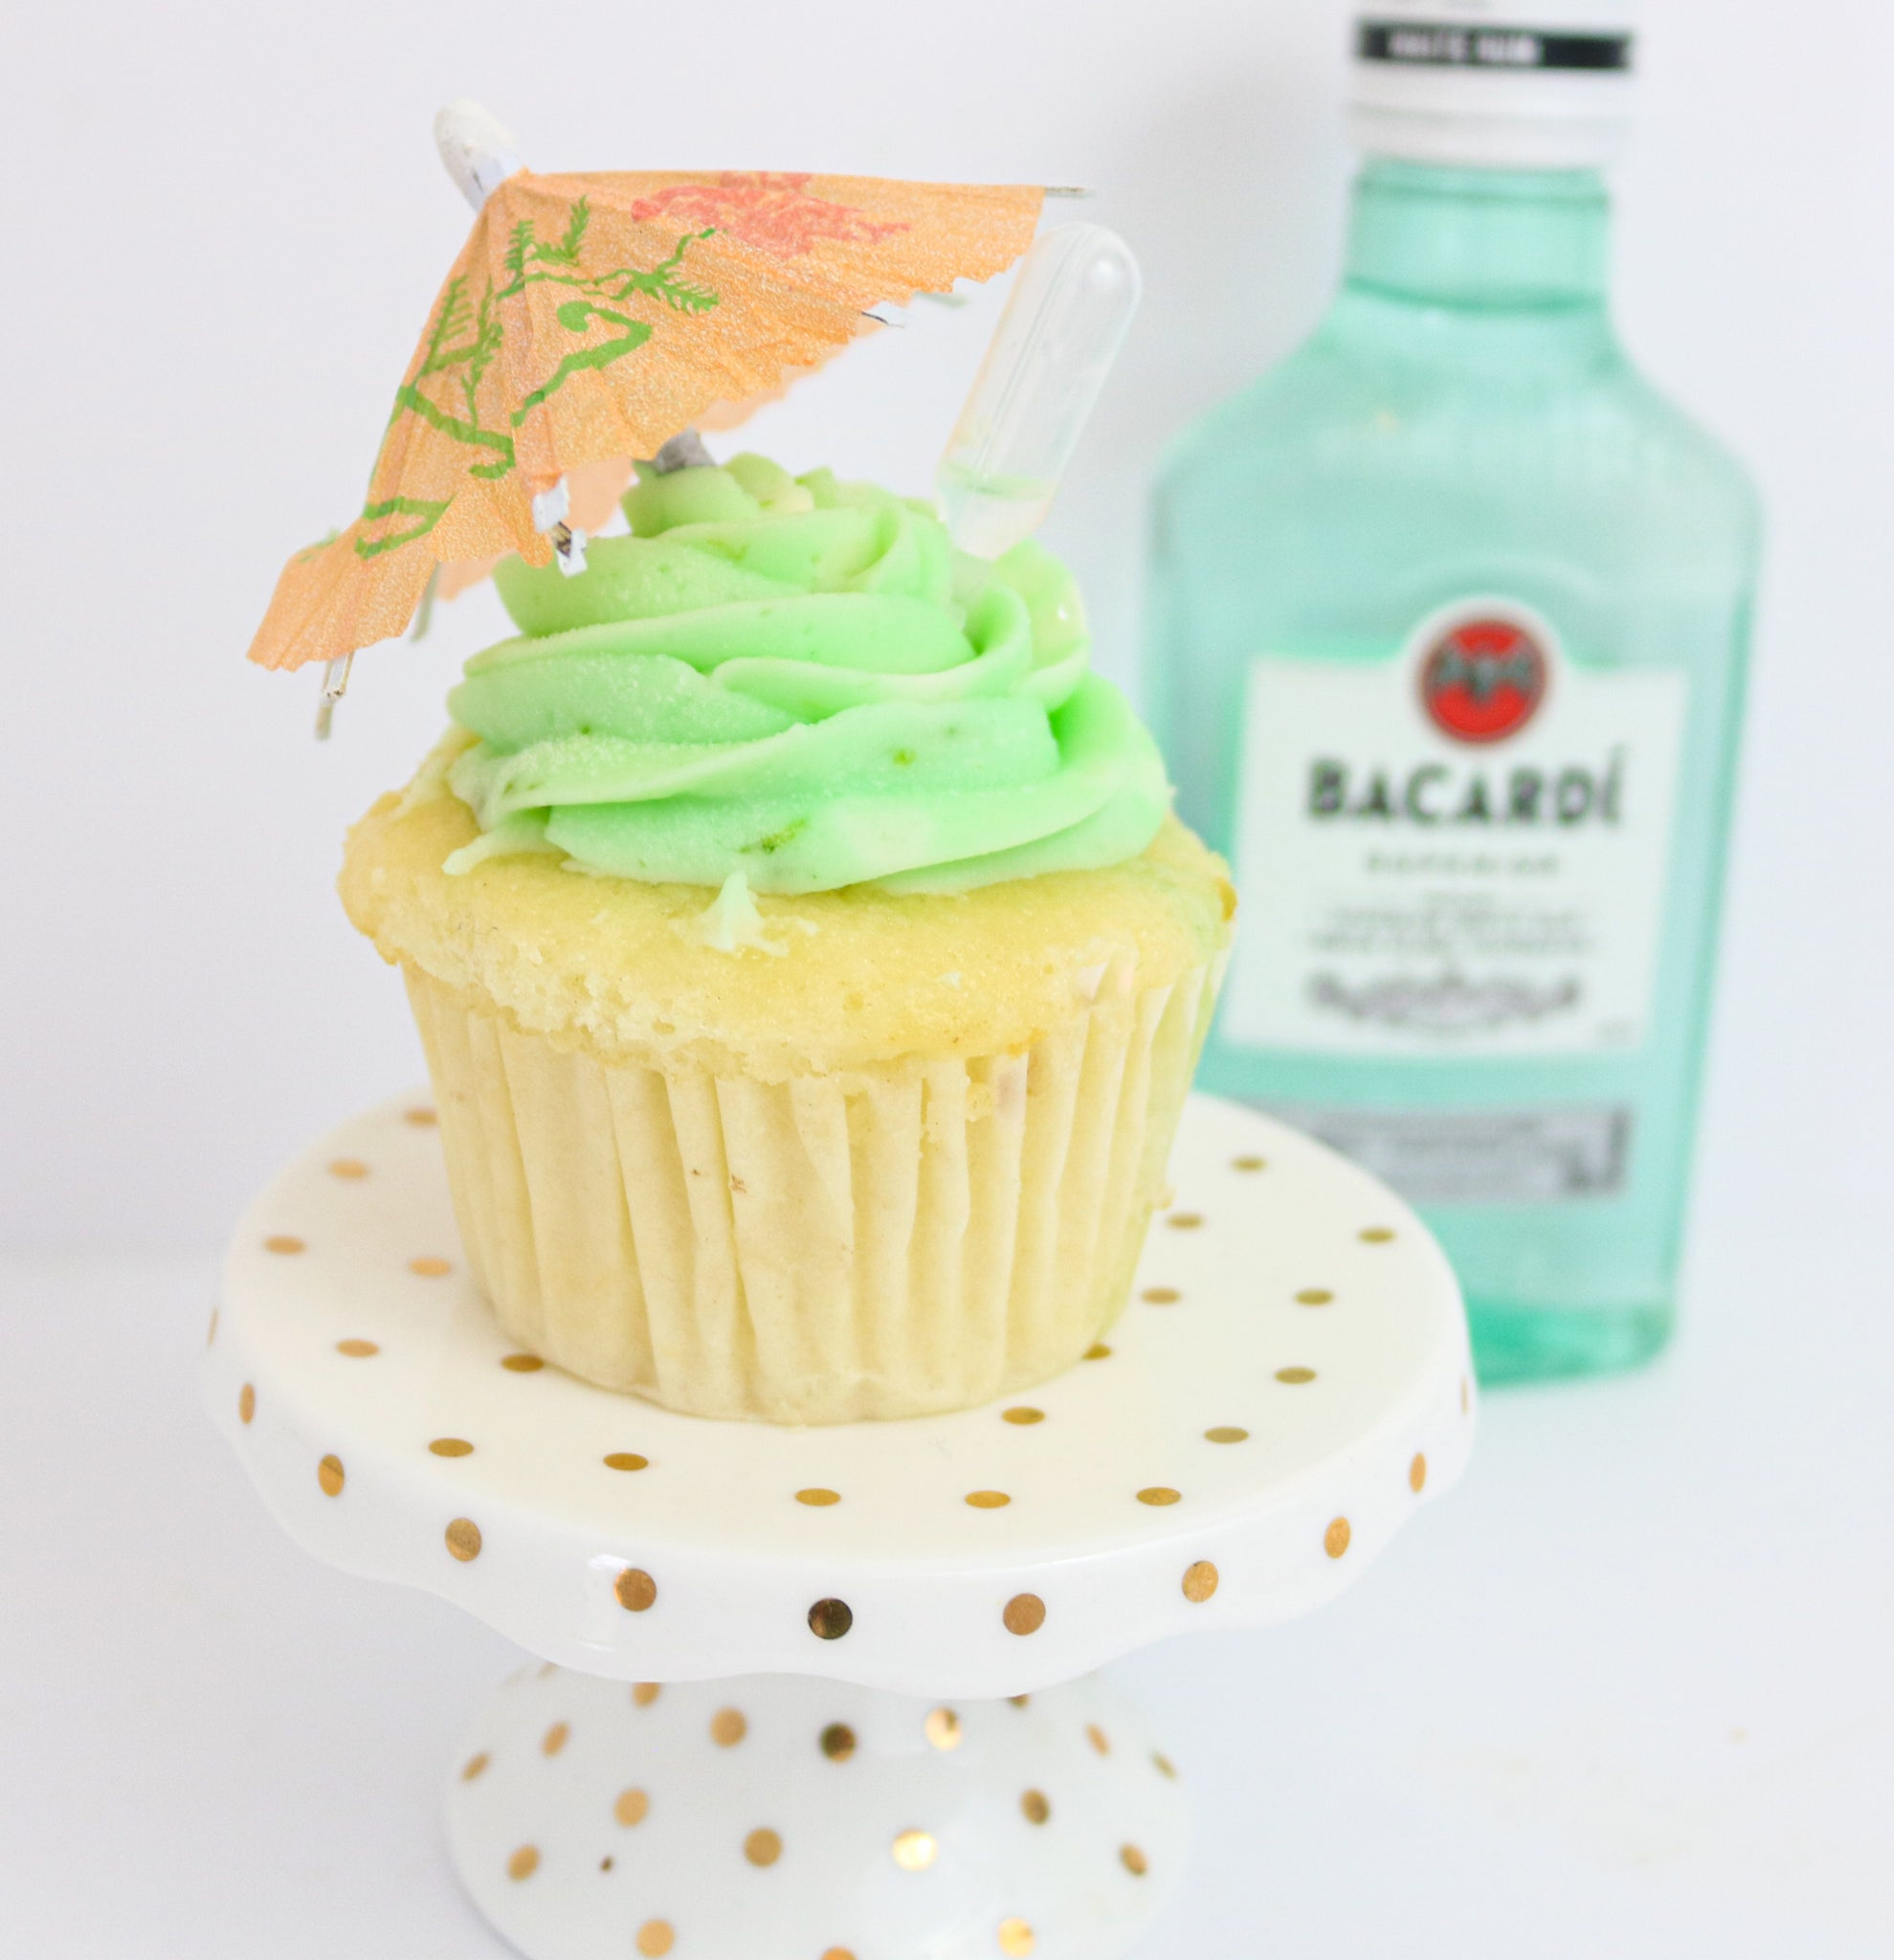 Margarita Lime Tipsy Cupcakes 12 (contains alcohol)